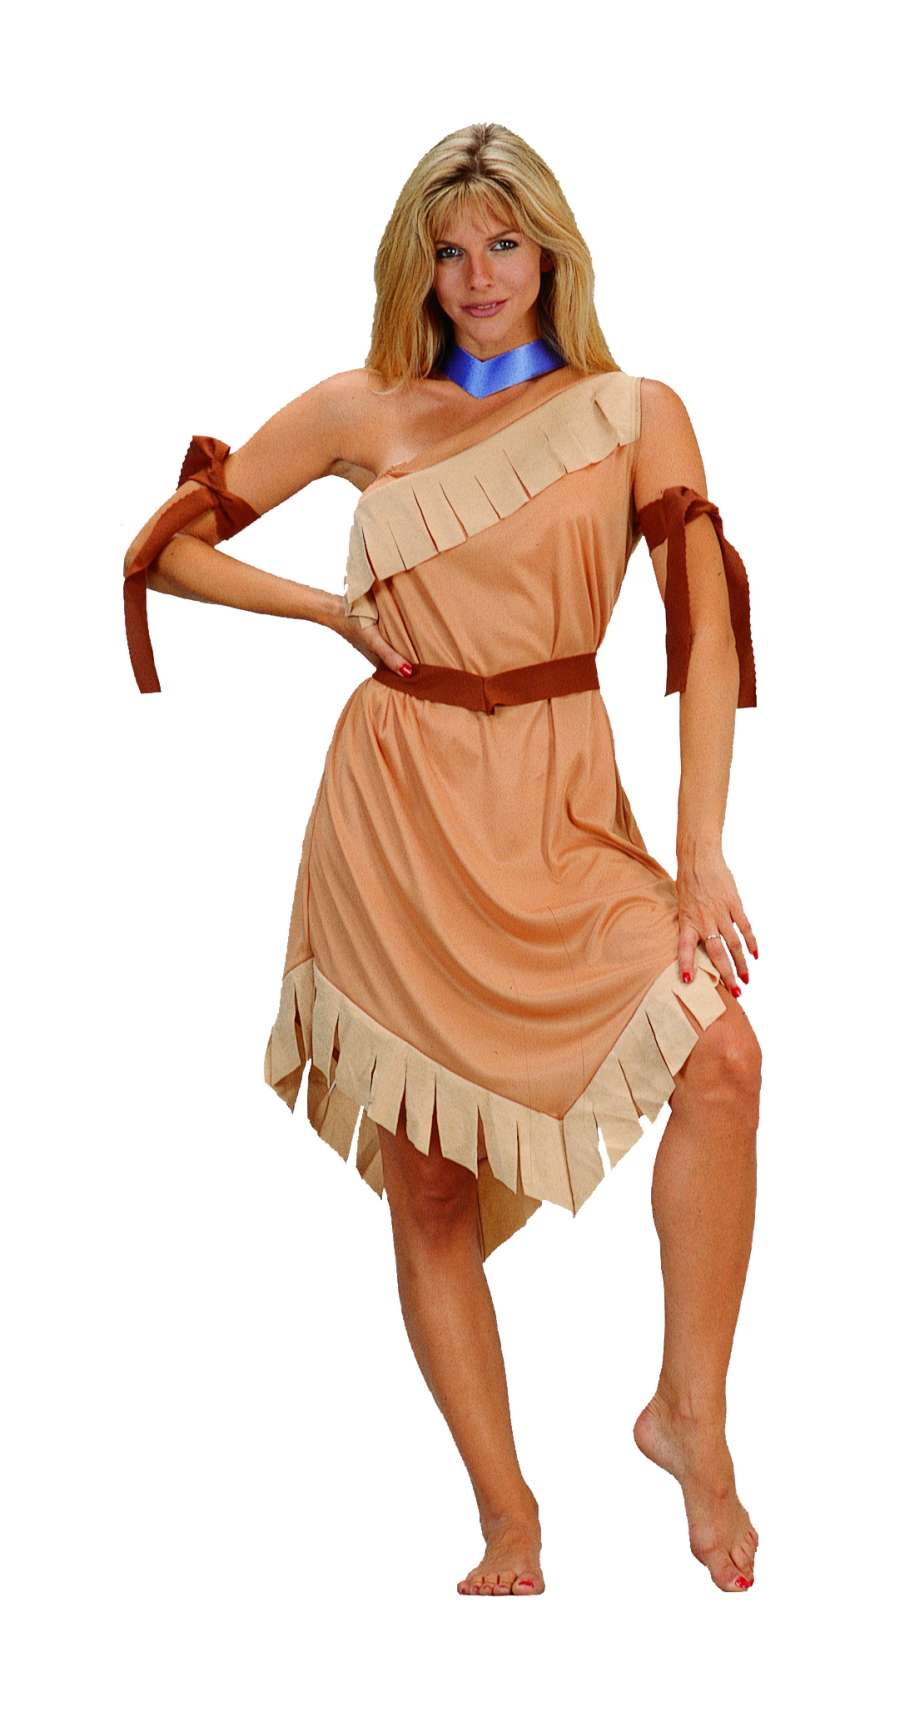 pocahontas adult costume za18839. Black Bedroom Furniture Sets. Home Design Ideas